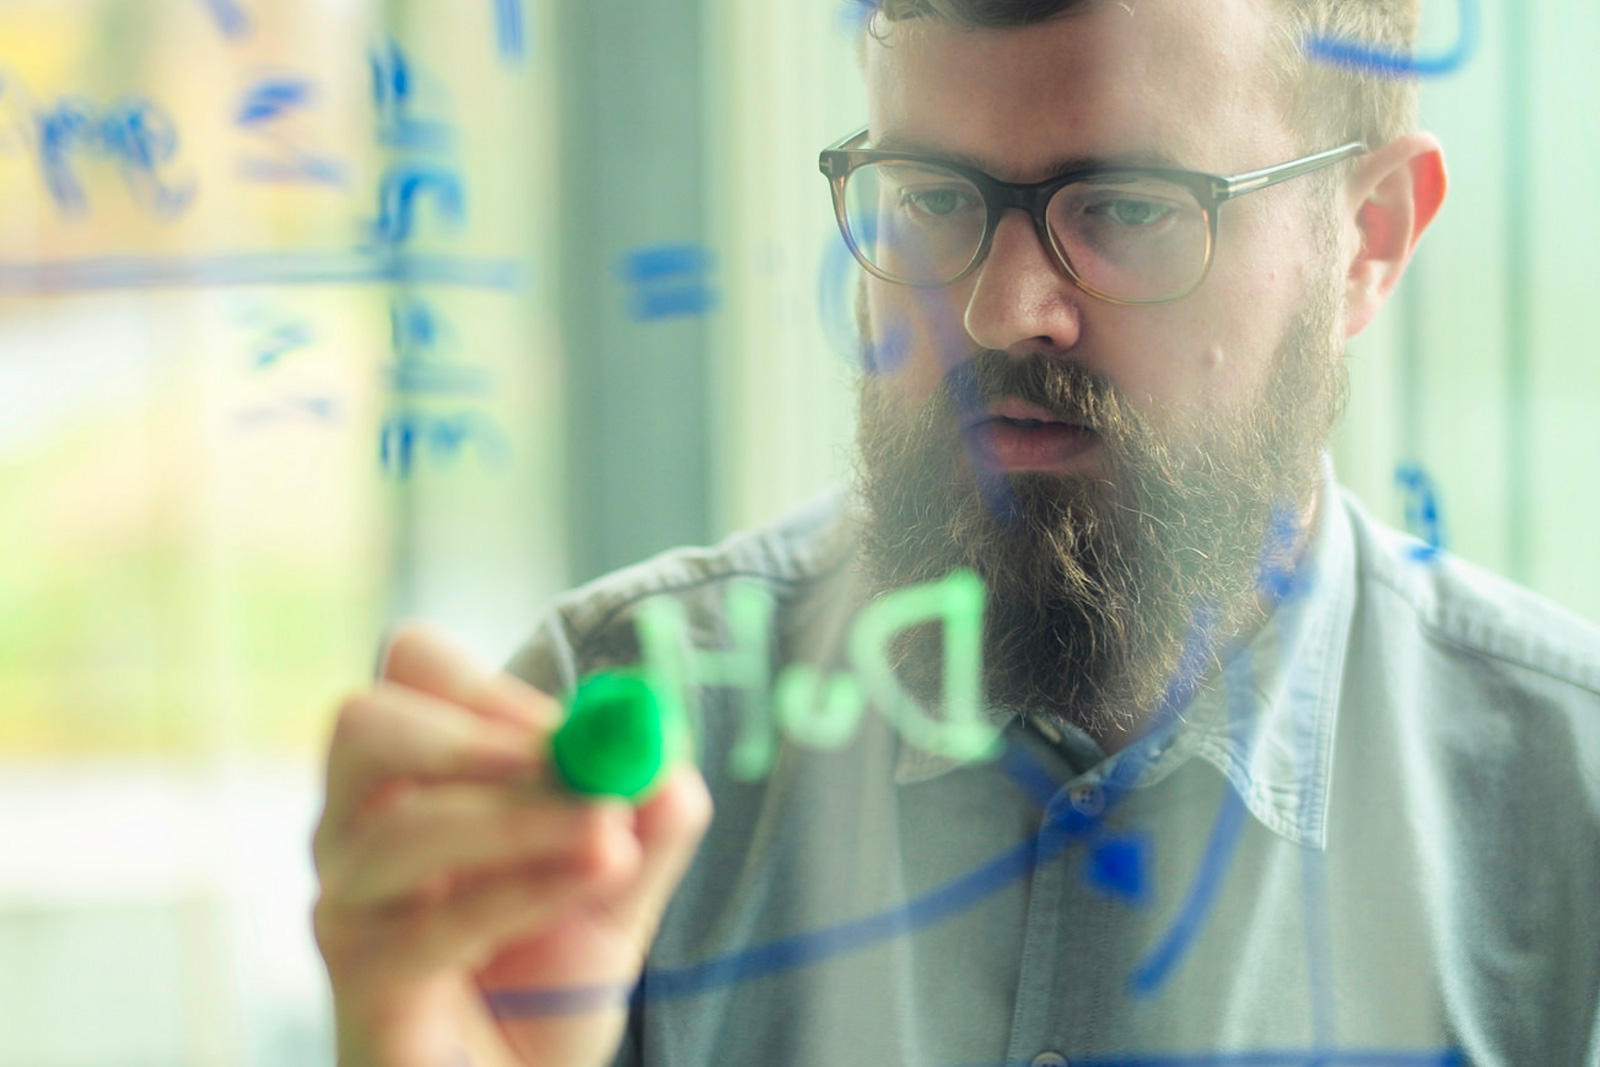 IBM Researcher working on Machine Learning